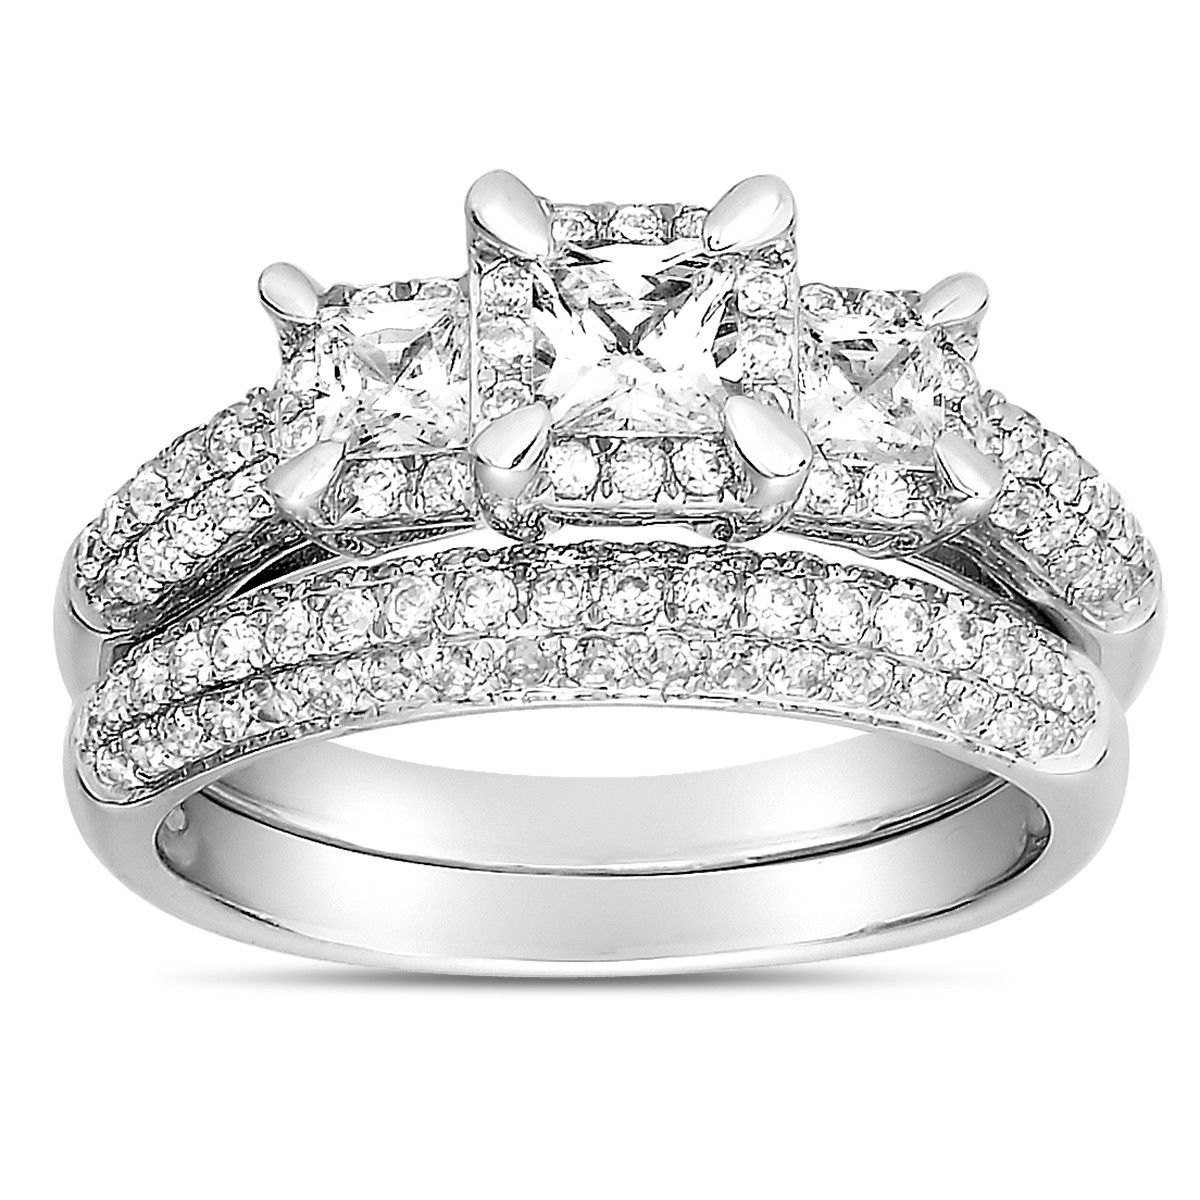 2 Carat Three Stone Trilogy Princess Diamond Wedding Ring With Current Diamond Bold Five Stone Anniversary Bands In White Gold (View 9 of 25)